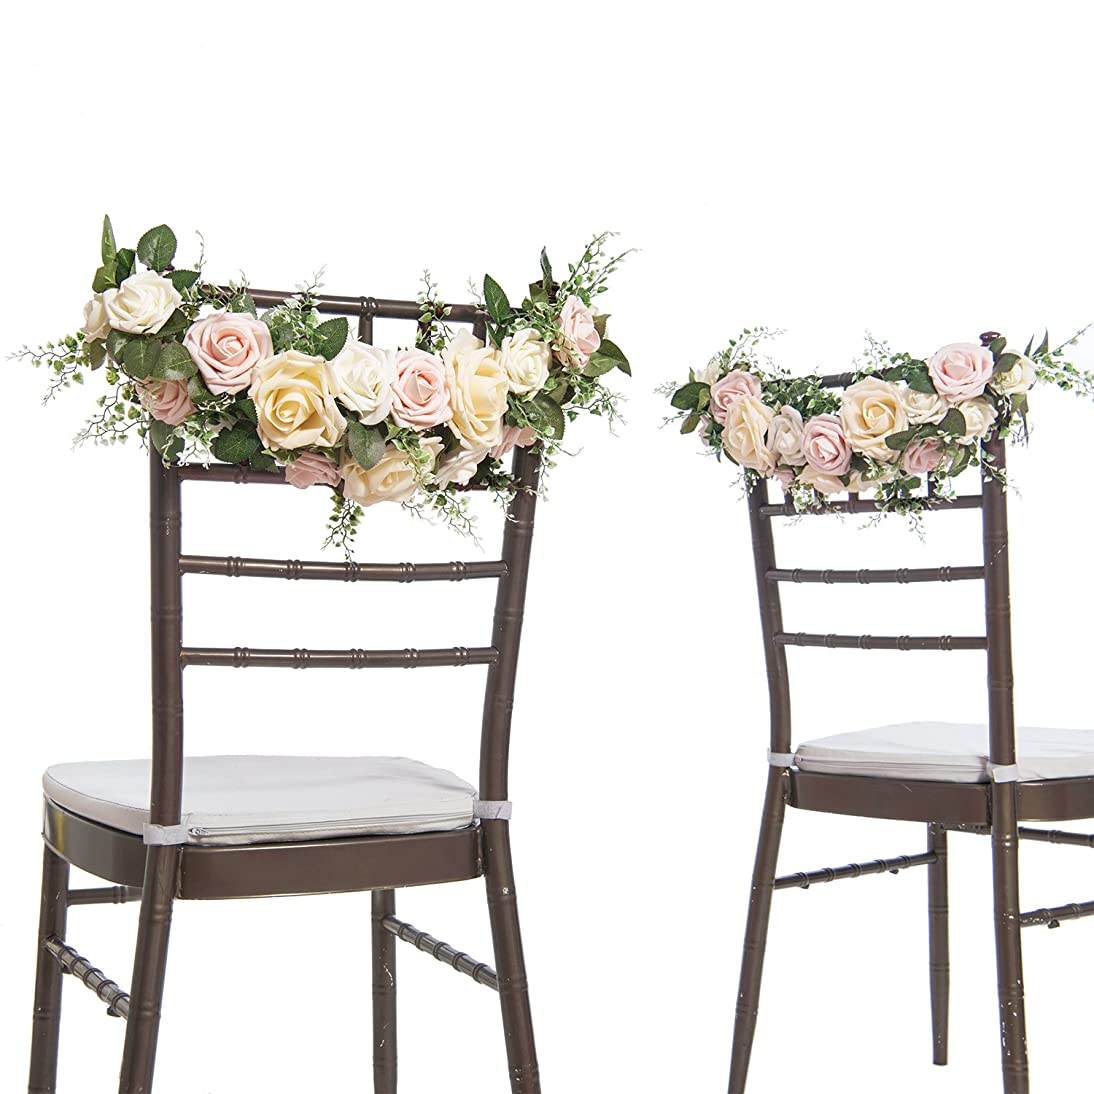 Ling's moment Chair Decor for Wedding Chair Banners for Wedding Chair Garland Real Looking Artificial Rose (Pack of 2)